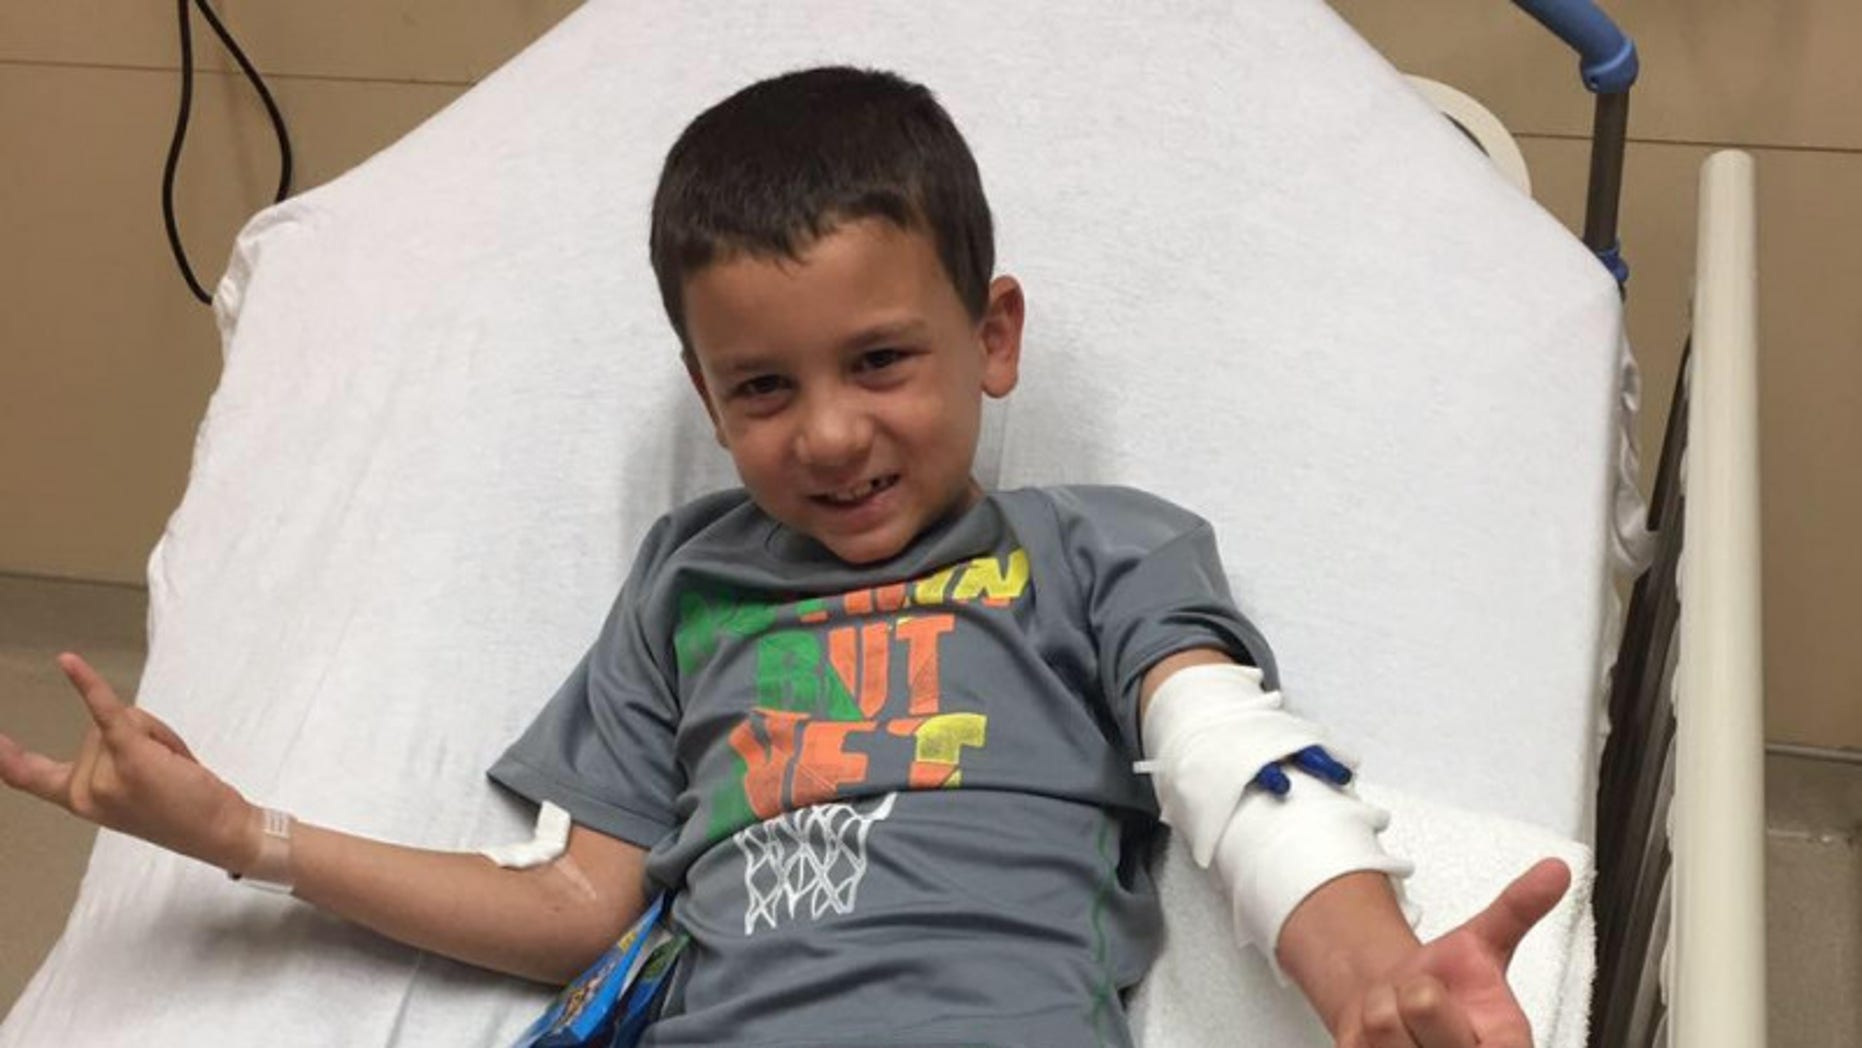 Logan Silva, 7, was injured playing soccer about three months ago, but had been complaining of severe headaches and vomiting ever since.